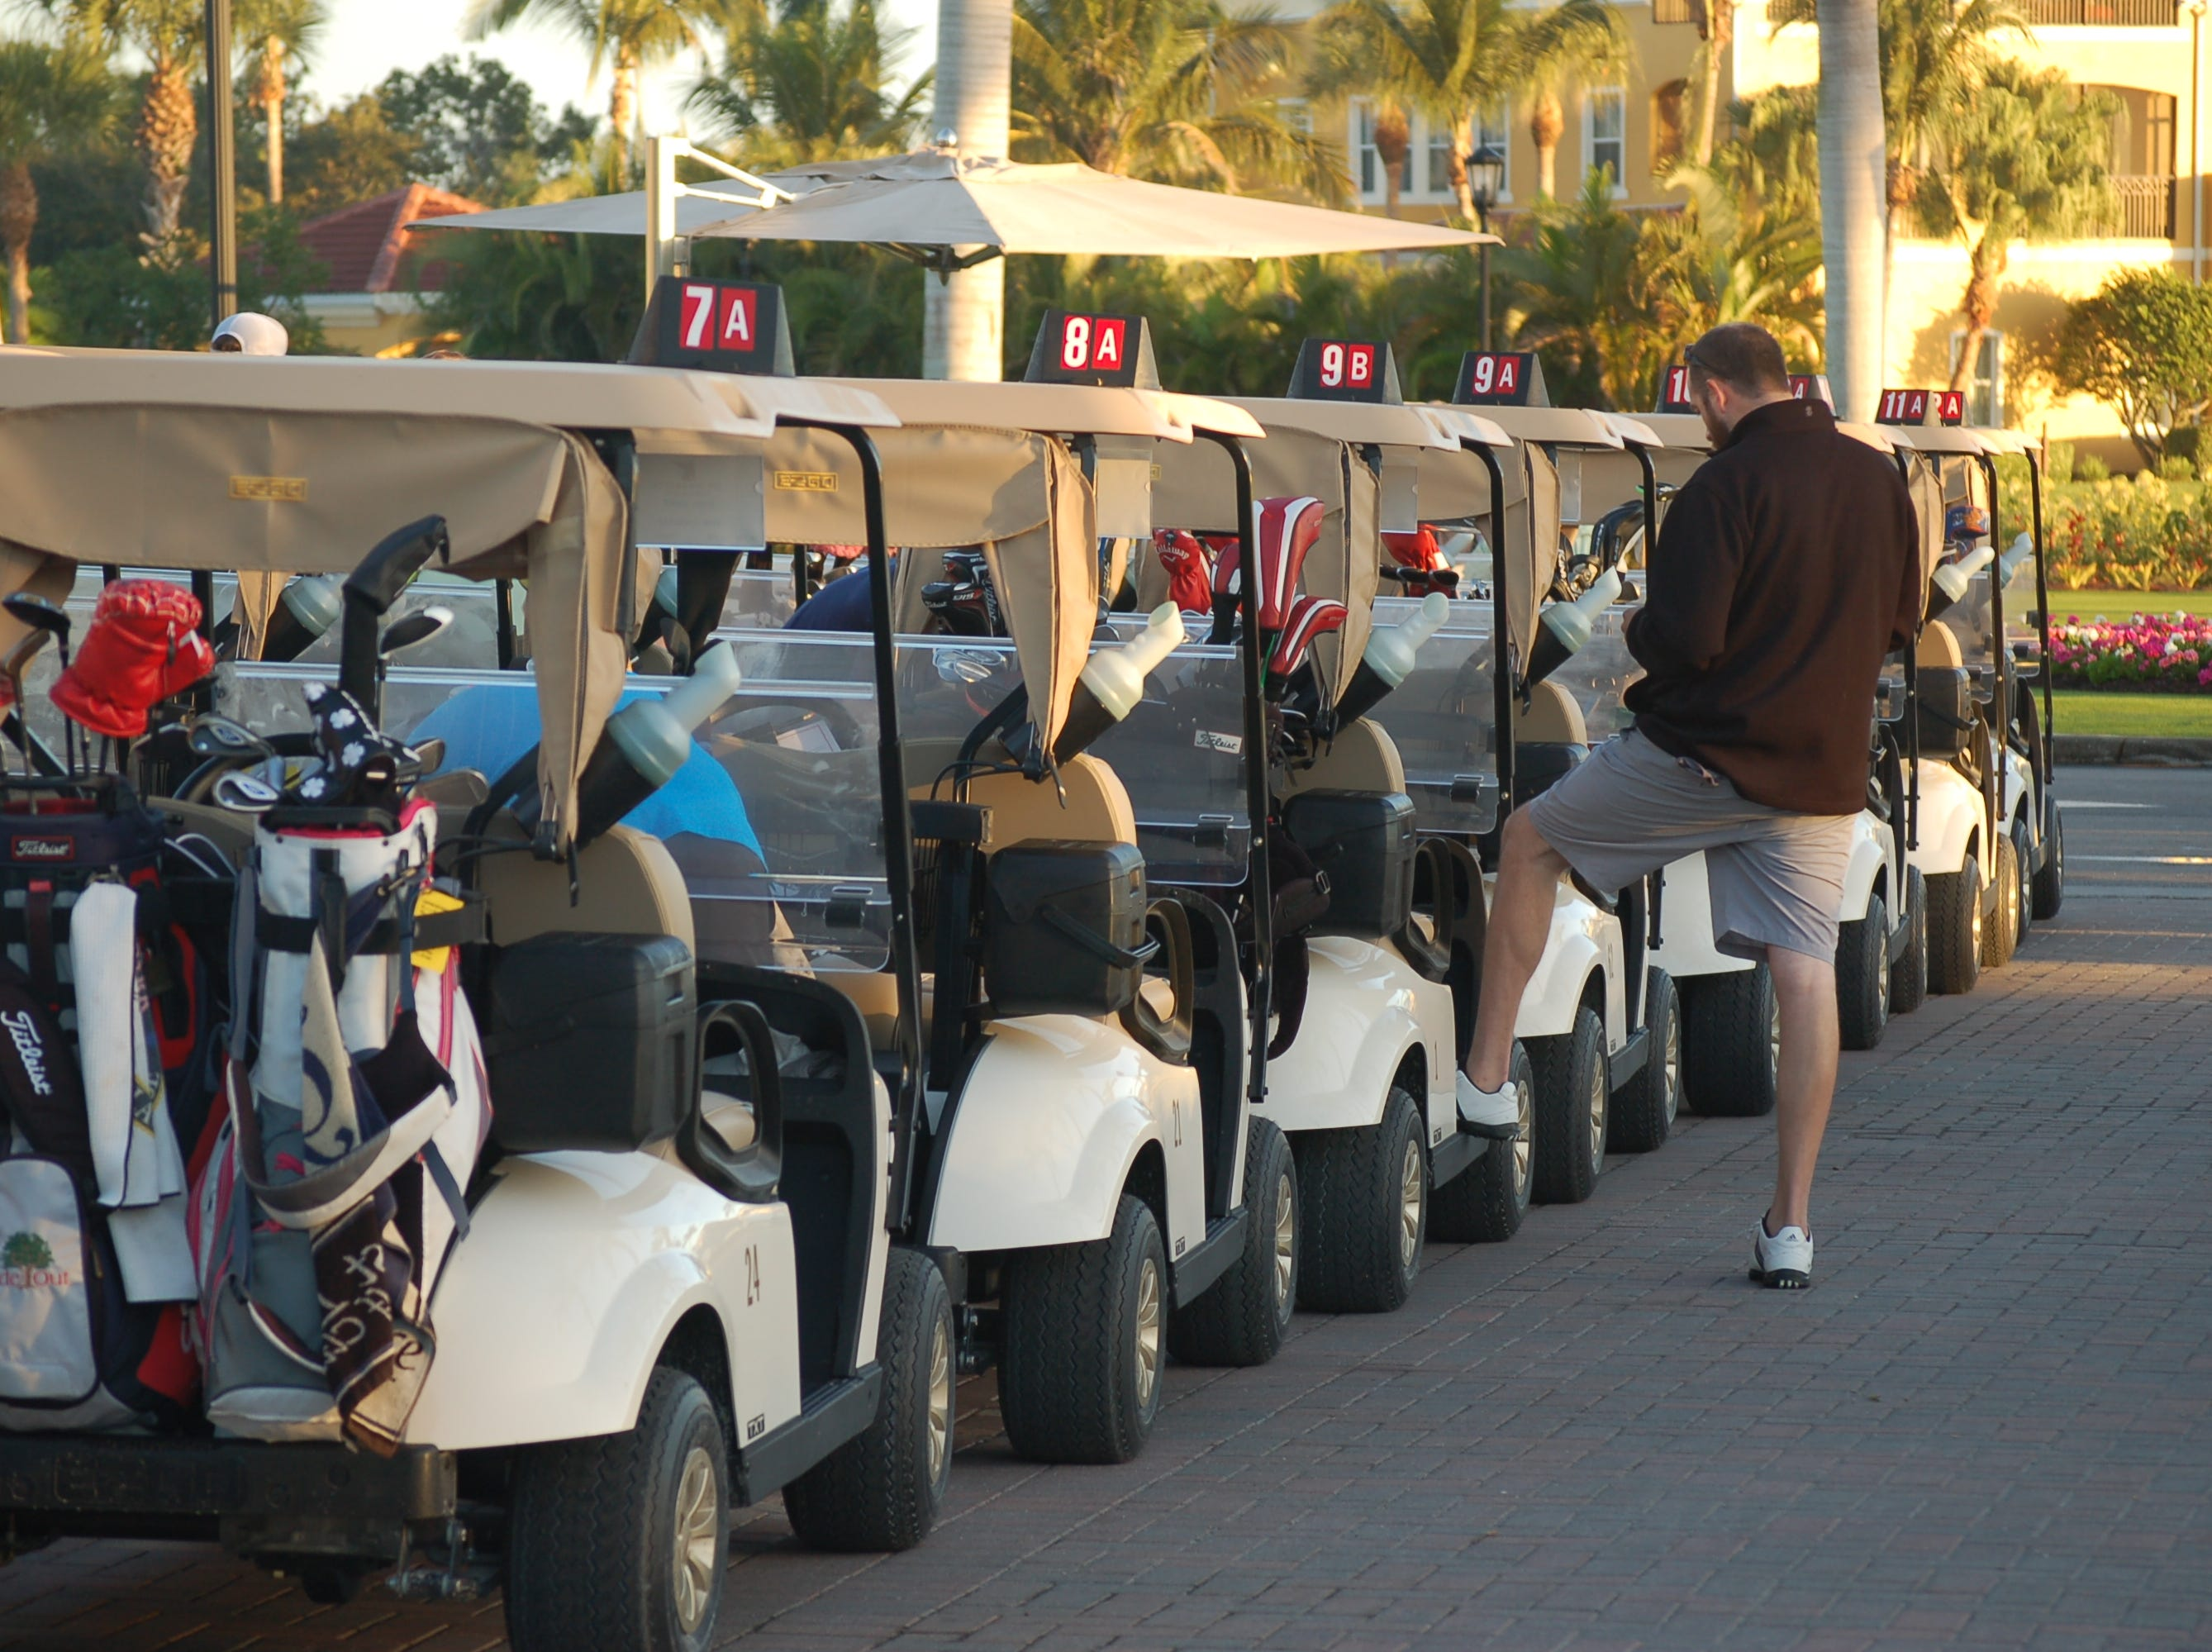 Carts are lined up for the start, which was chilly before warming up during the morning.